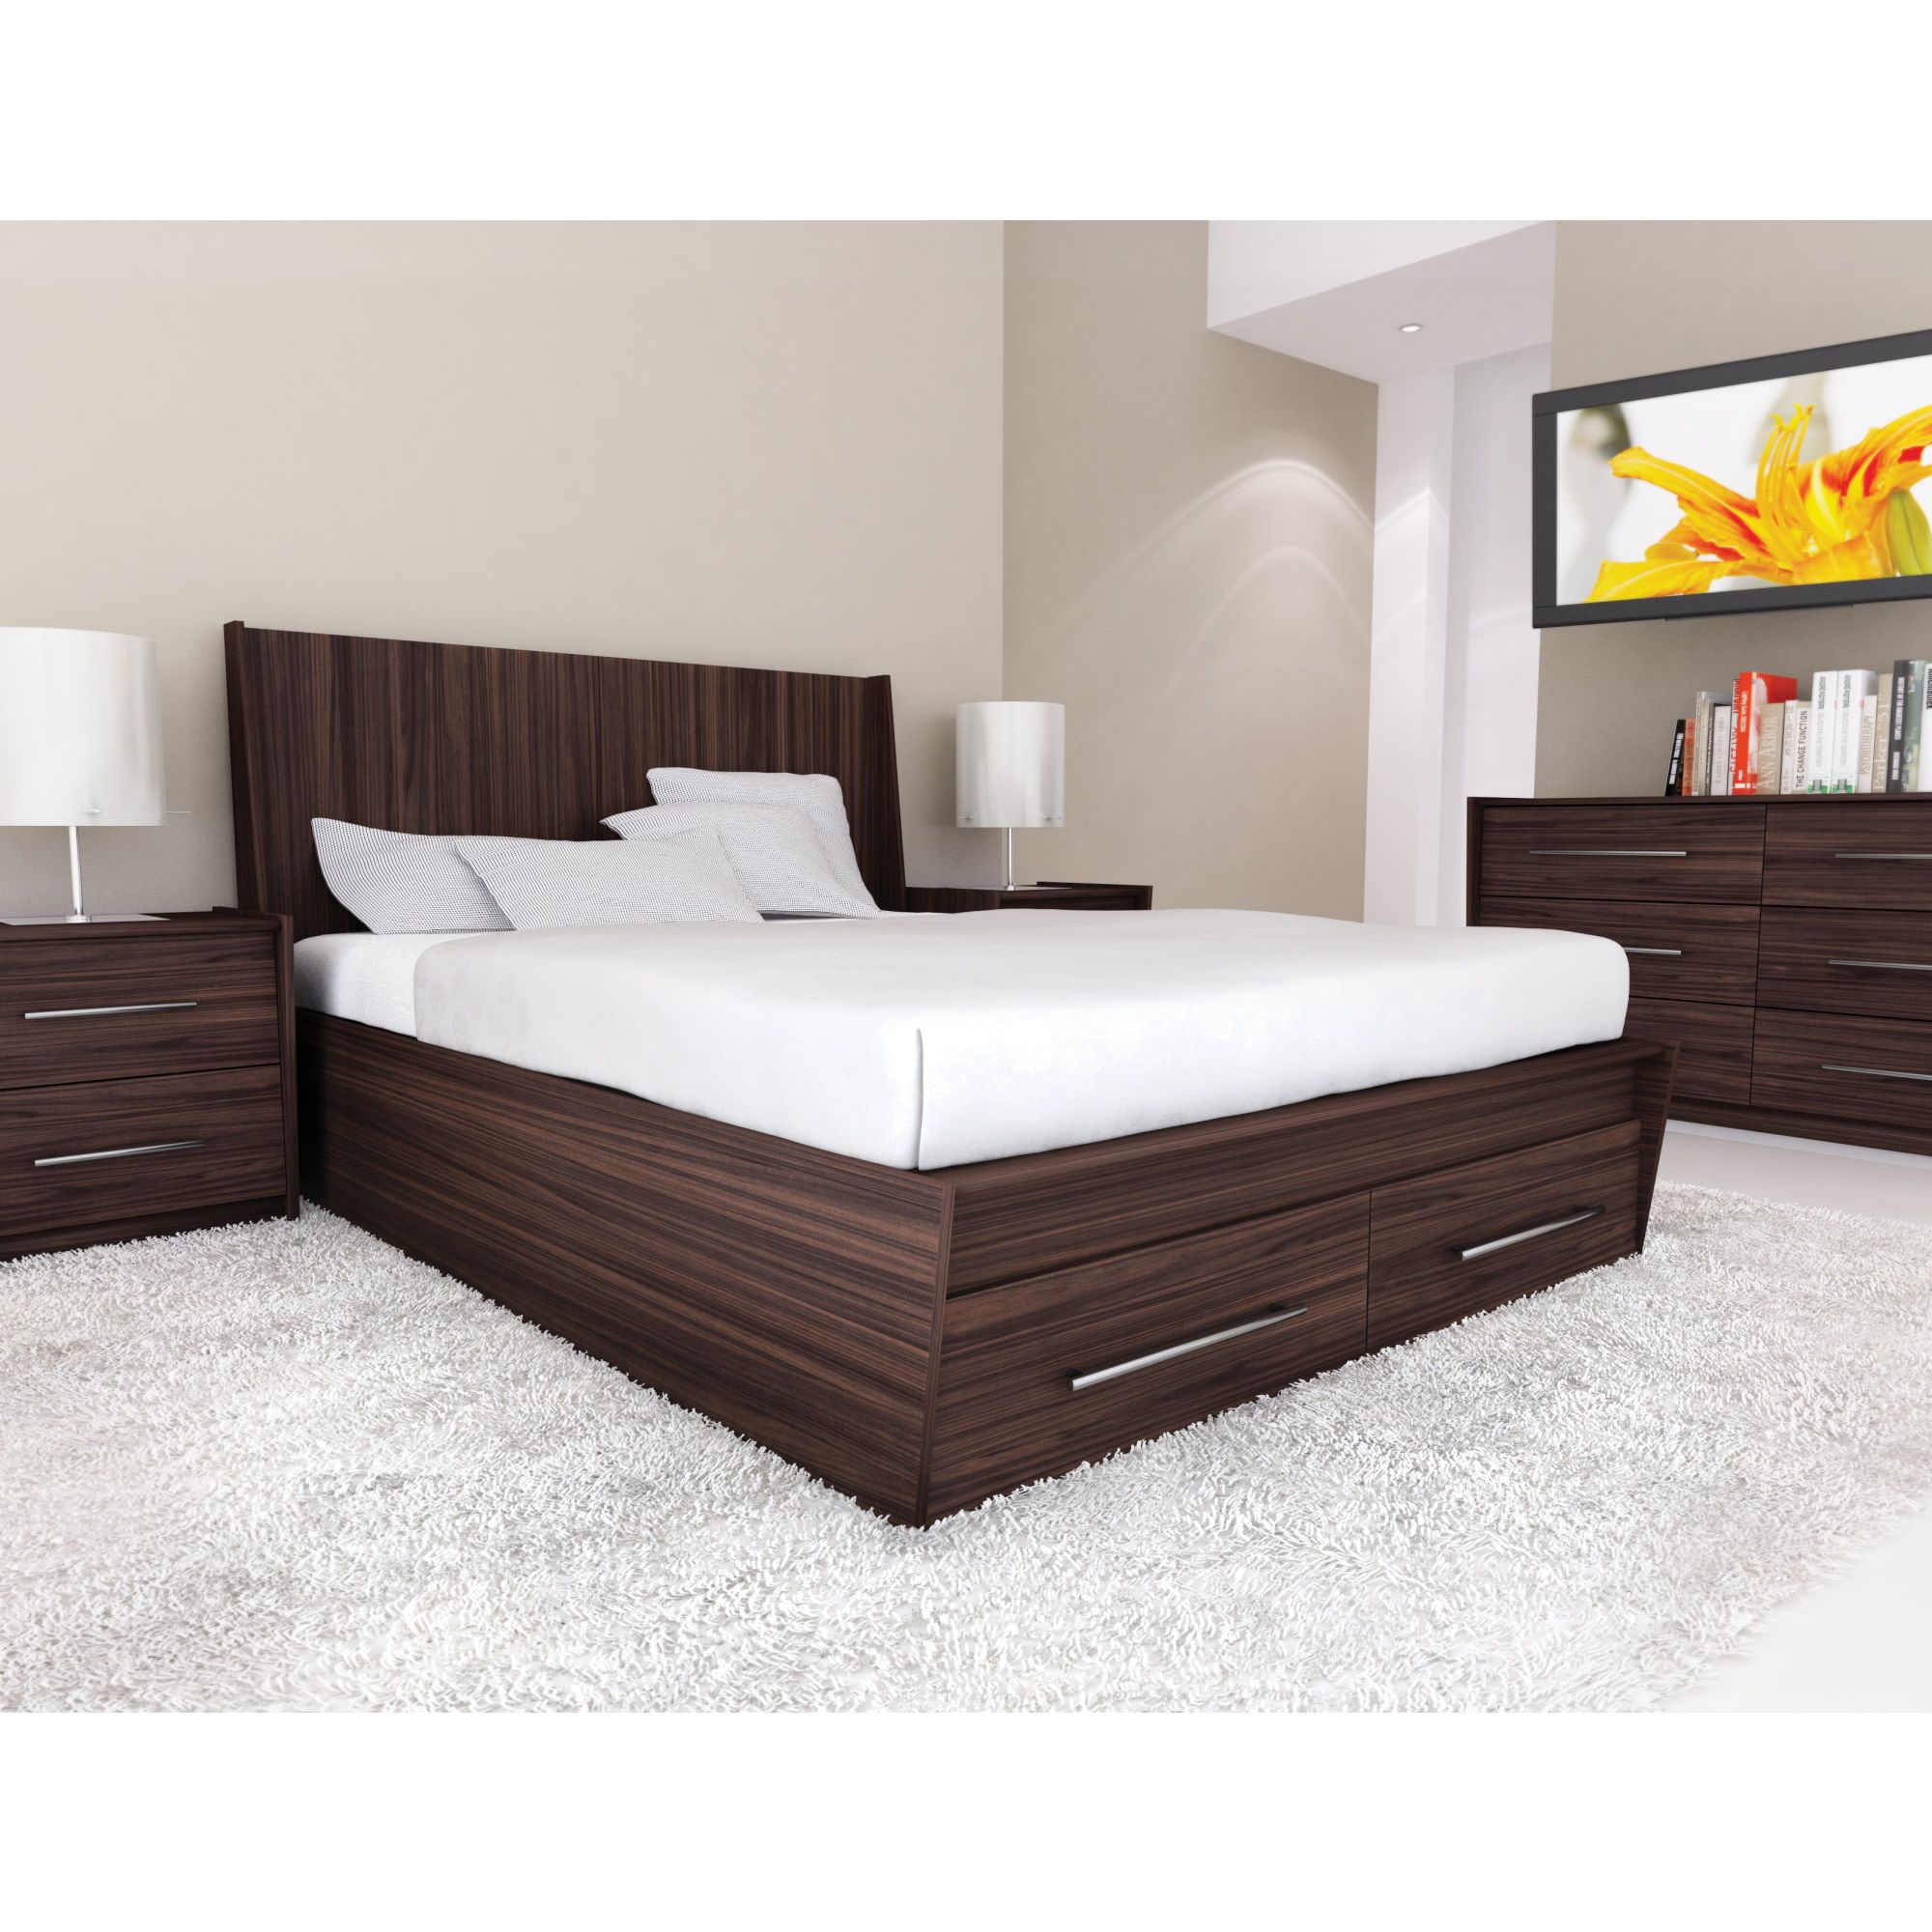 Bed Designs for Your Comfortable Bedroom Interior Design ...